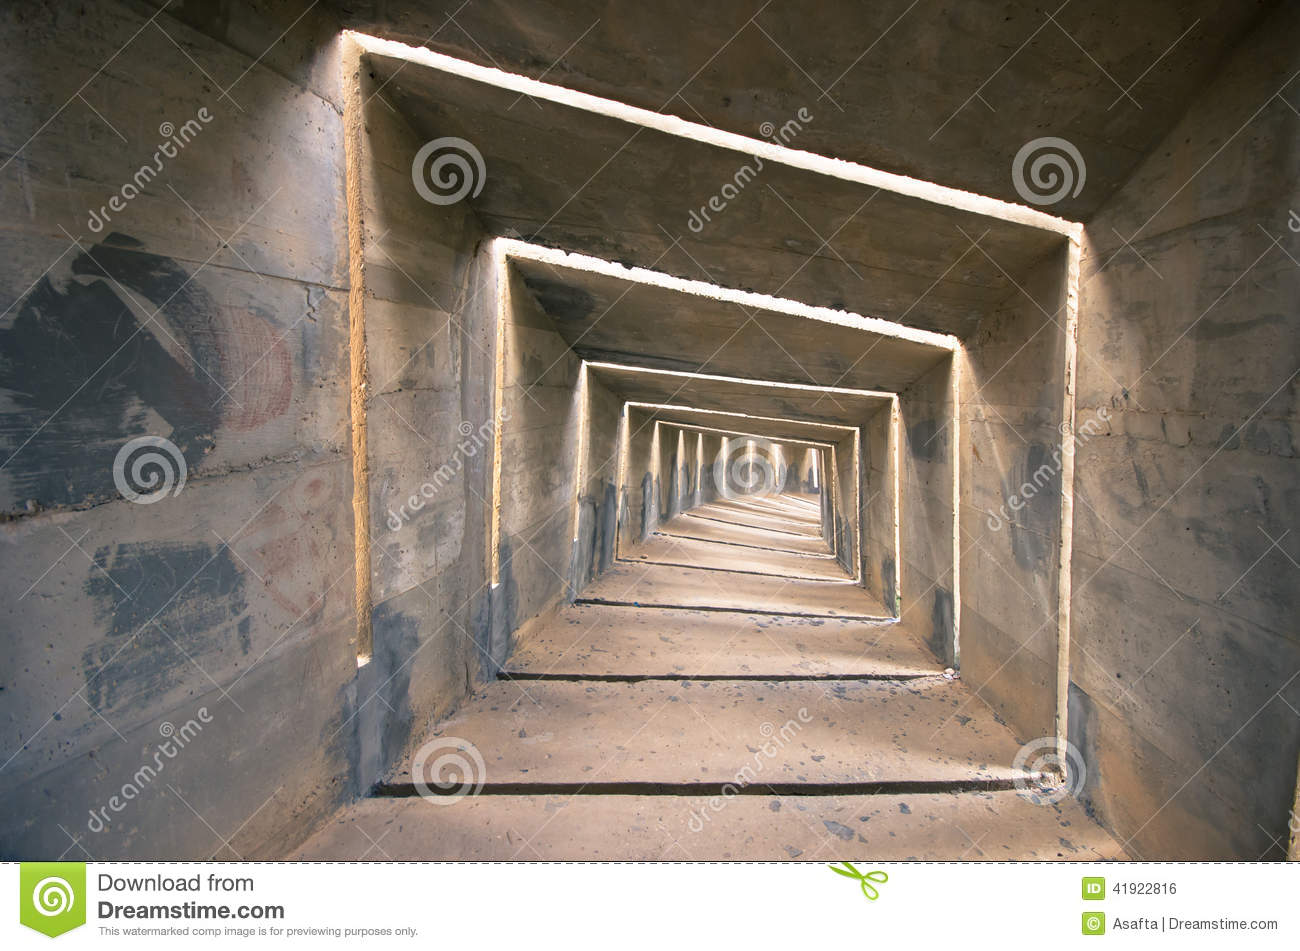 Tunnel concret